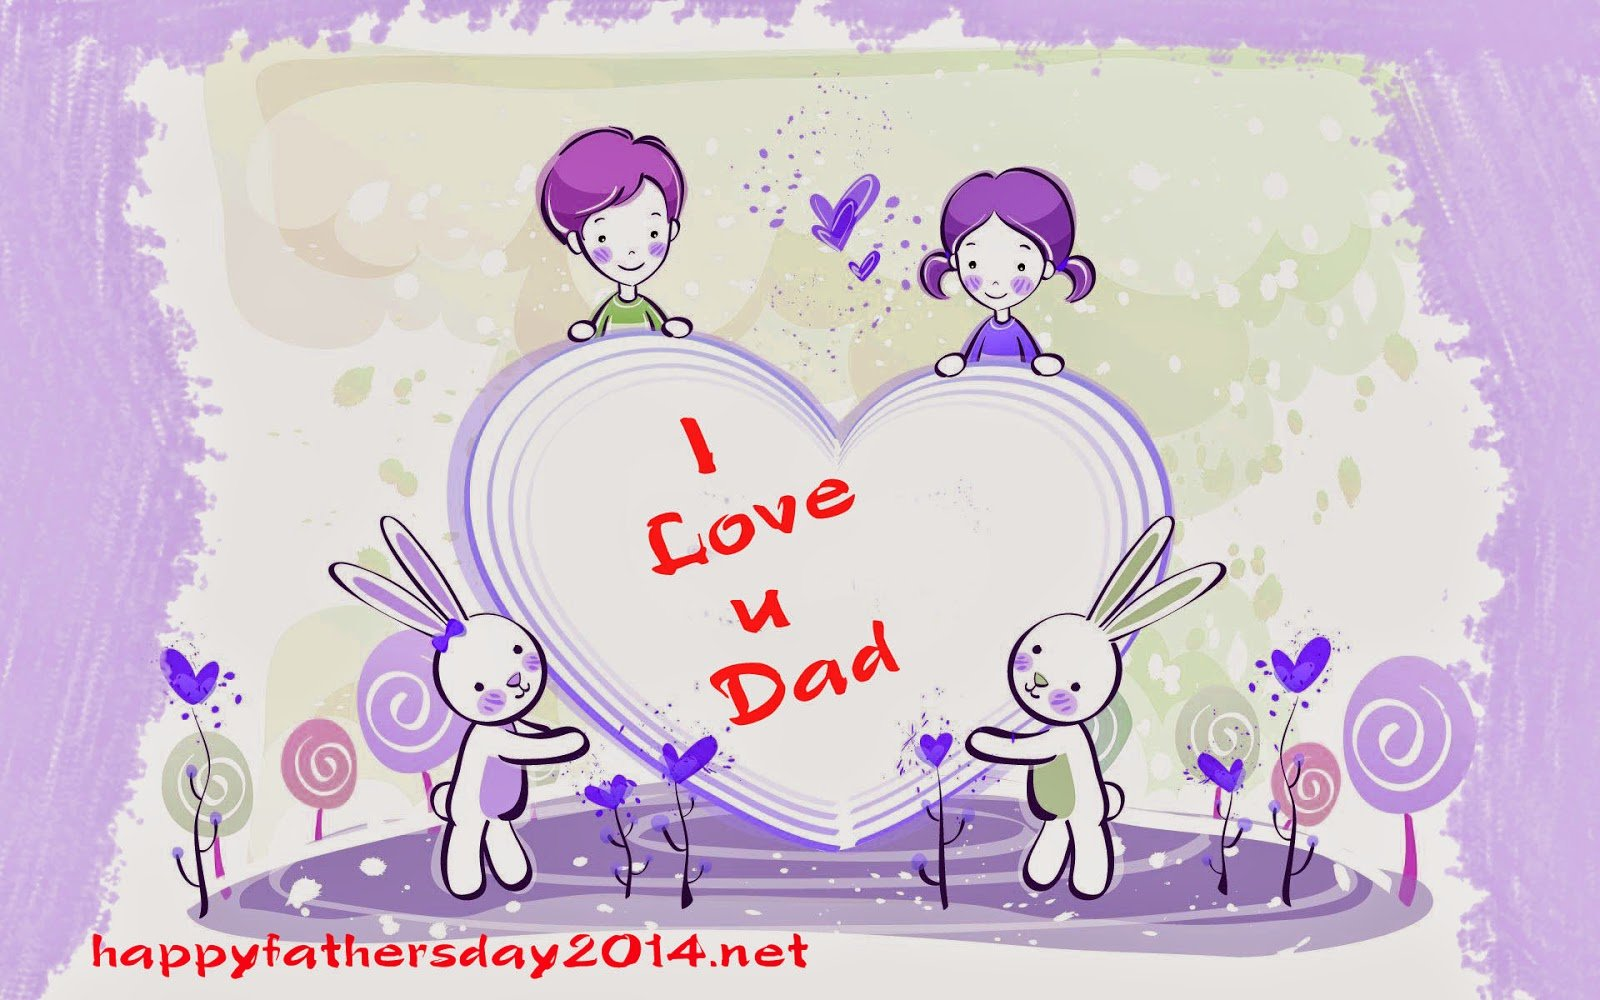 Download I Love You Dad Hd Wallpaper I Love U I Love You Fathers 1600x1000